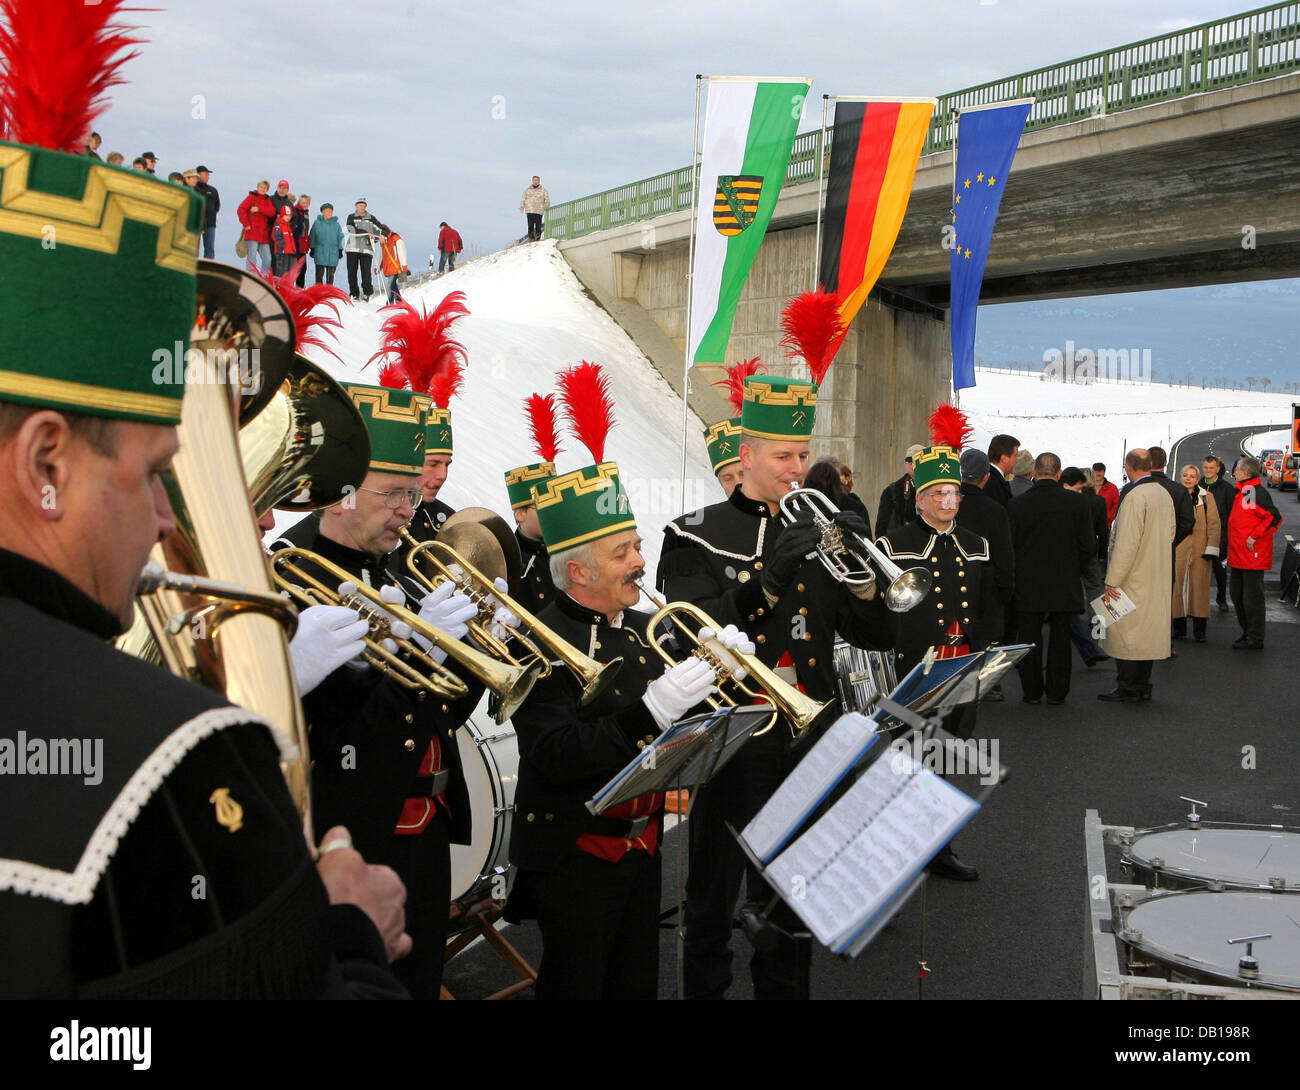 A band plays at the official handover of Marienberg in Marienberg, Germany, 22 November 2007. The bypass will be - Stock Image